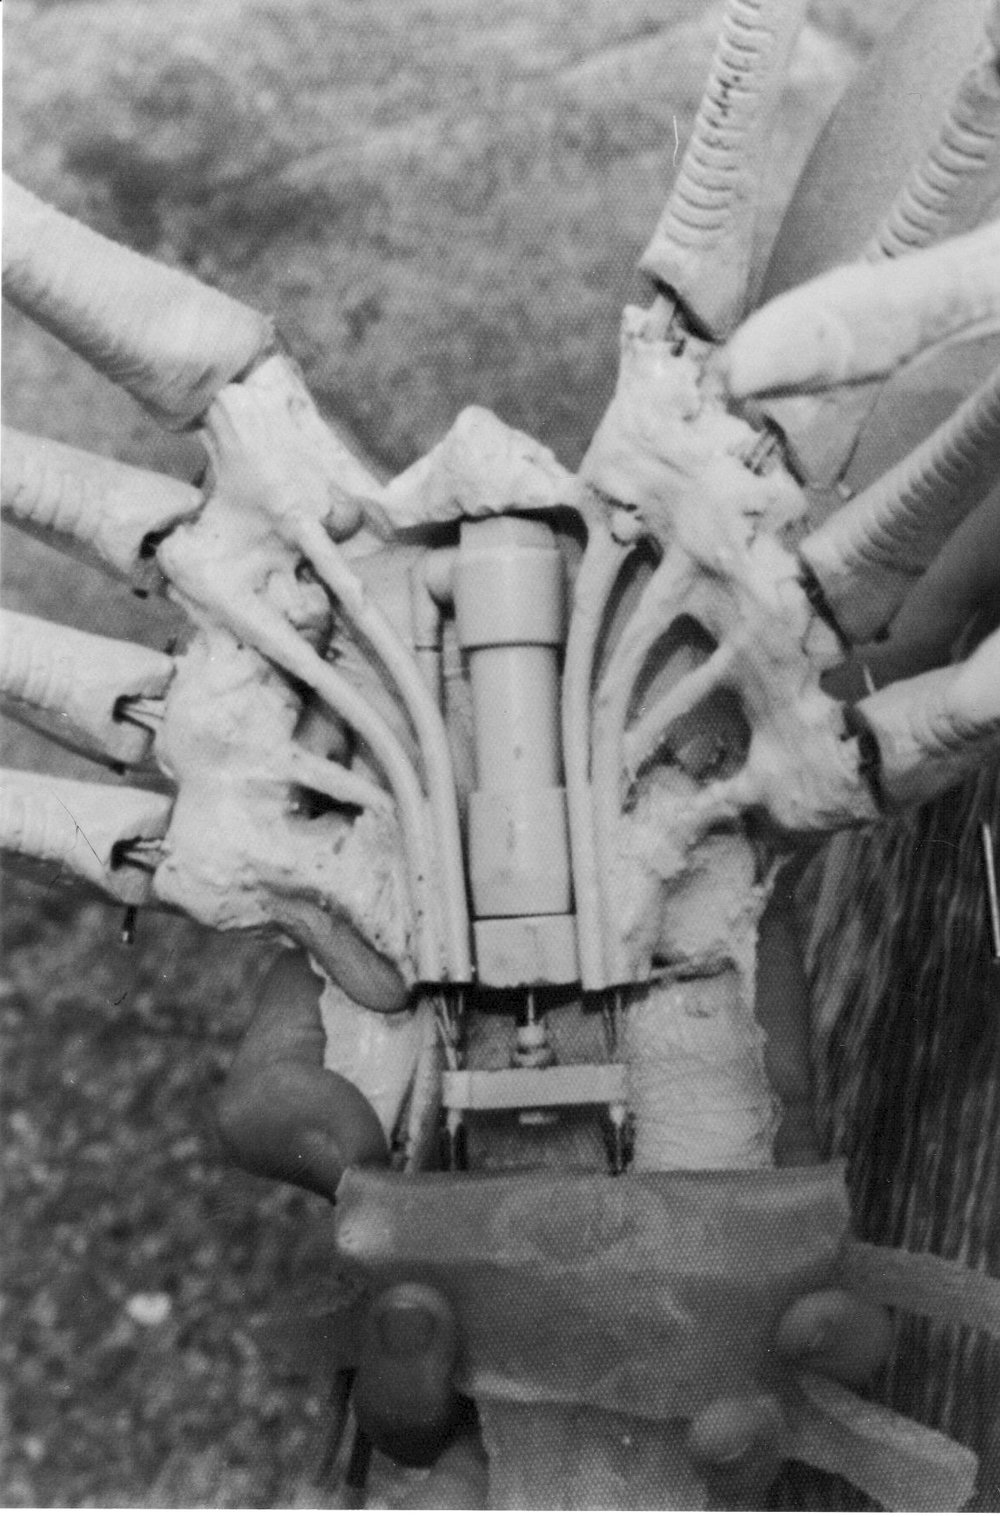 - A pneumatic compressed air actuator was used to pull & push the finger wires.The result was that the face hugger could walk in a crabbing style and clamp onto any unsuspecting being, inserting its eggs into whatever orifice it could find…….gruesome….